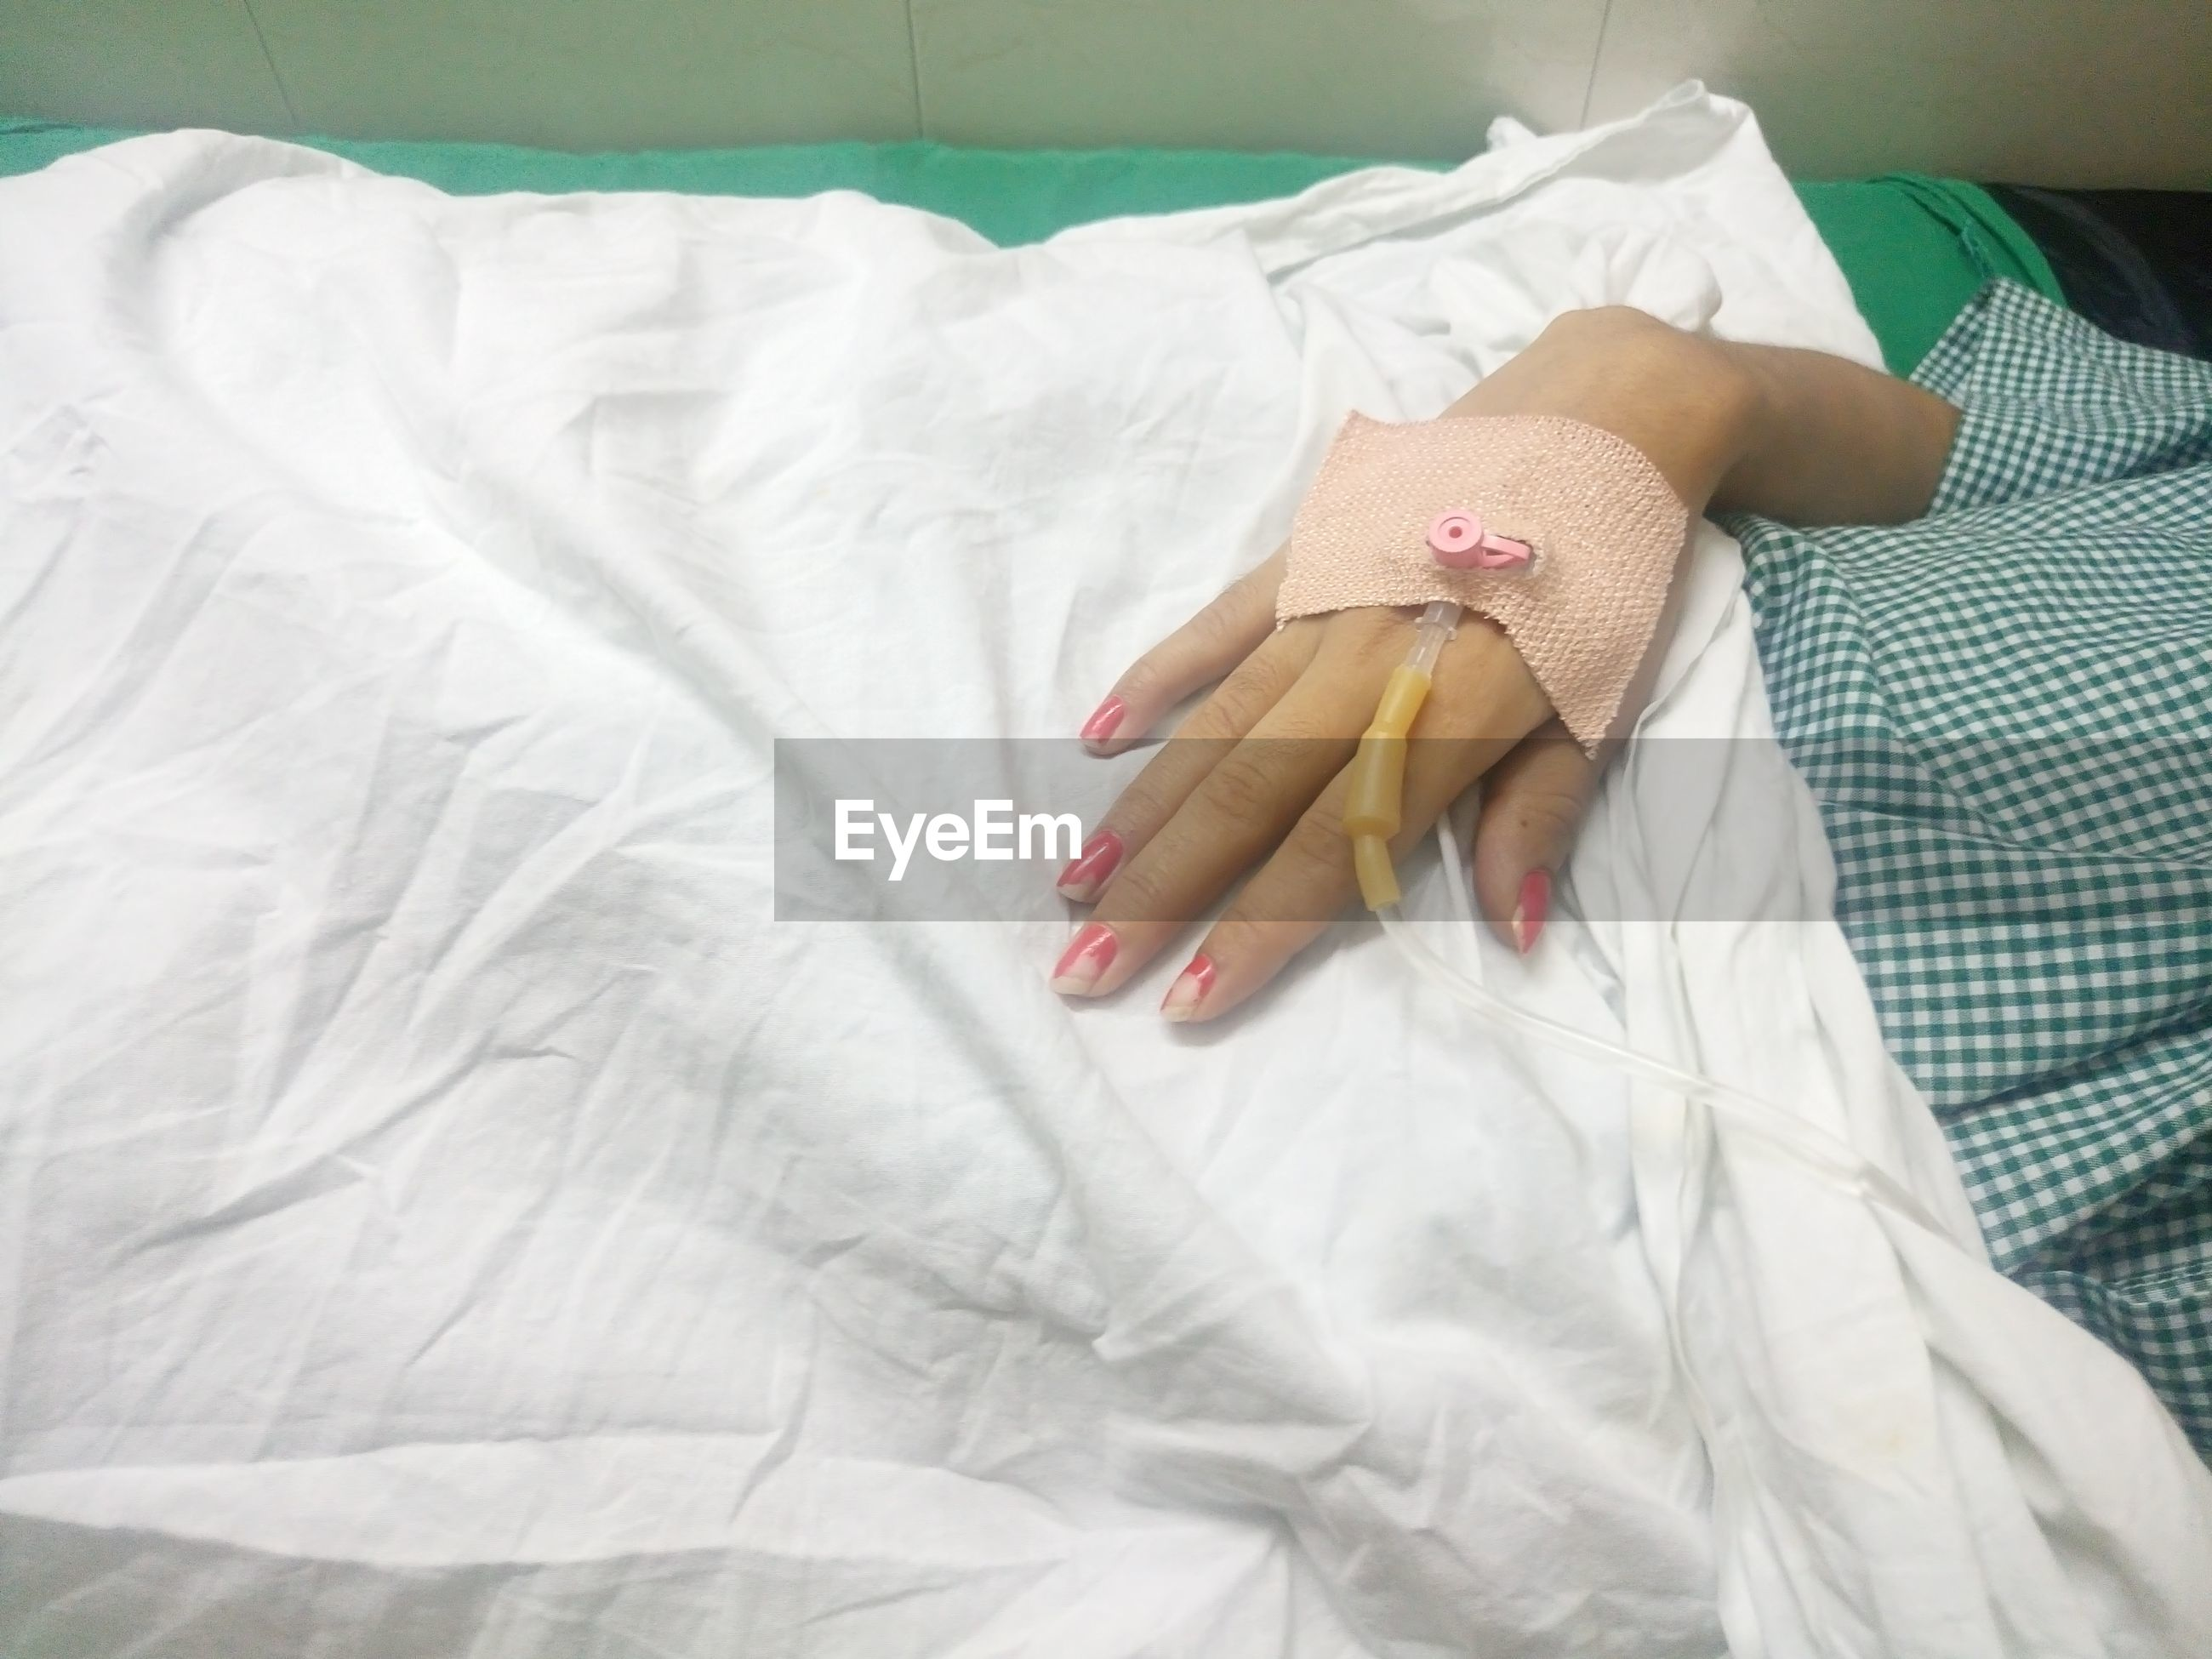 Cropped image of woman with iv drip on hand at hospital